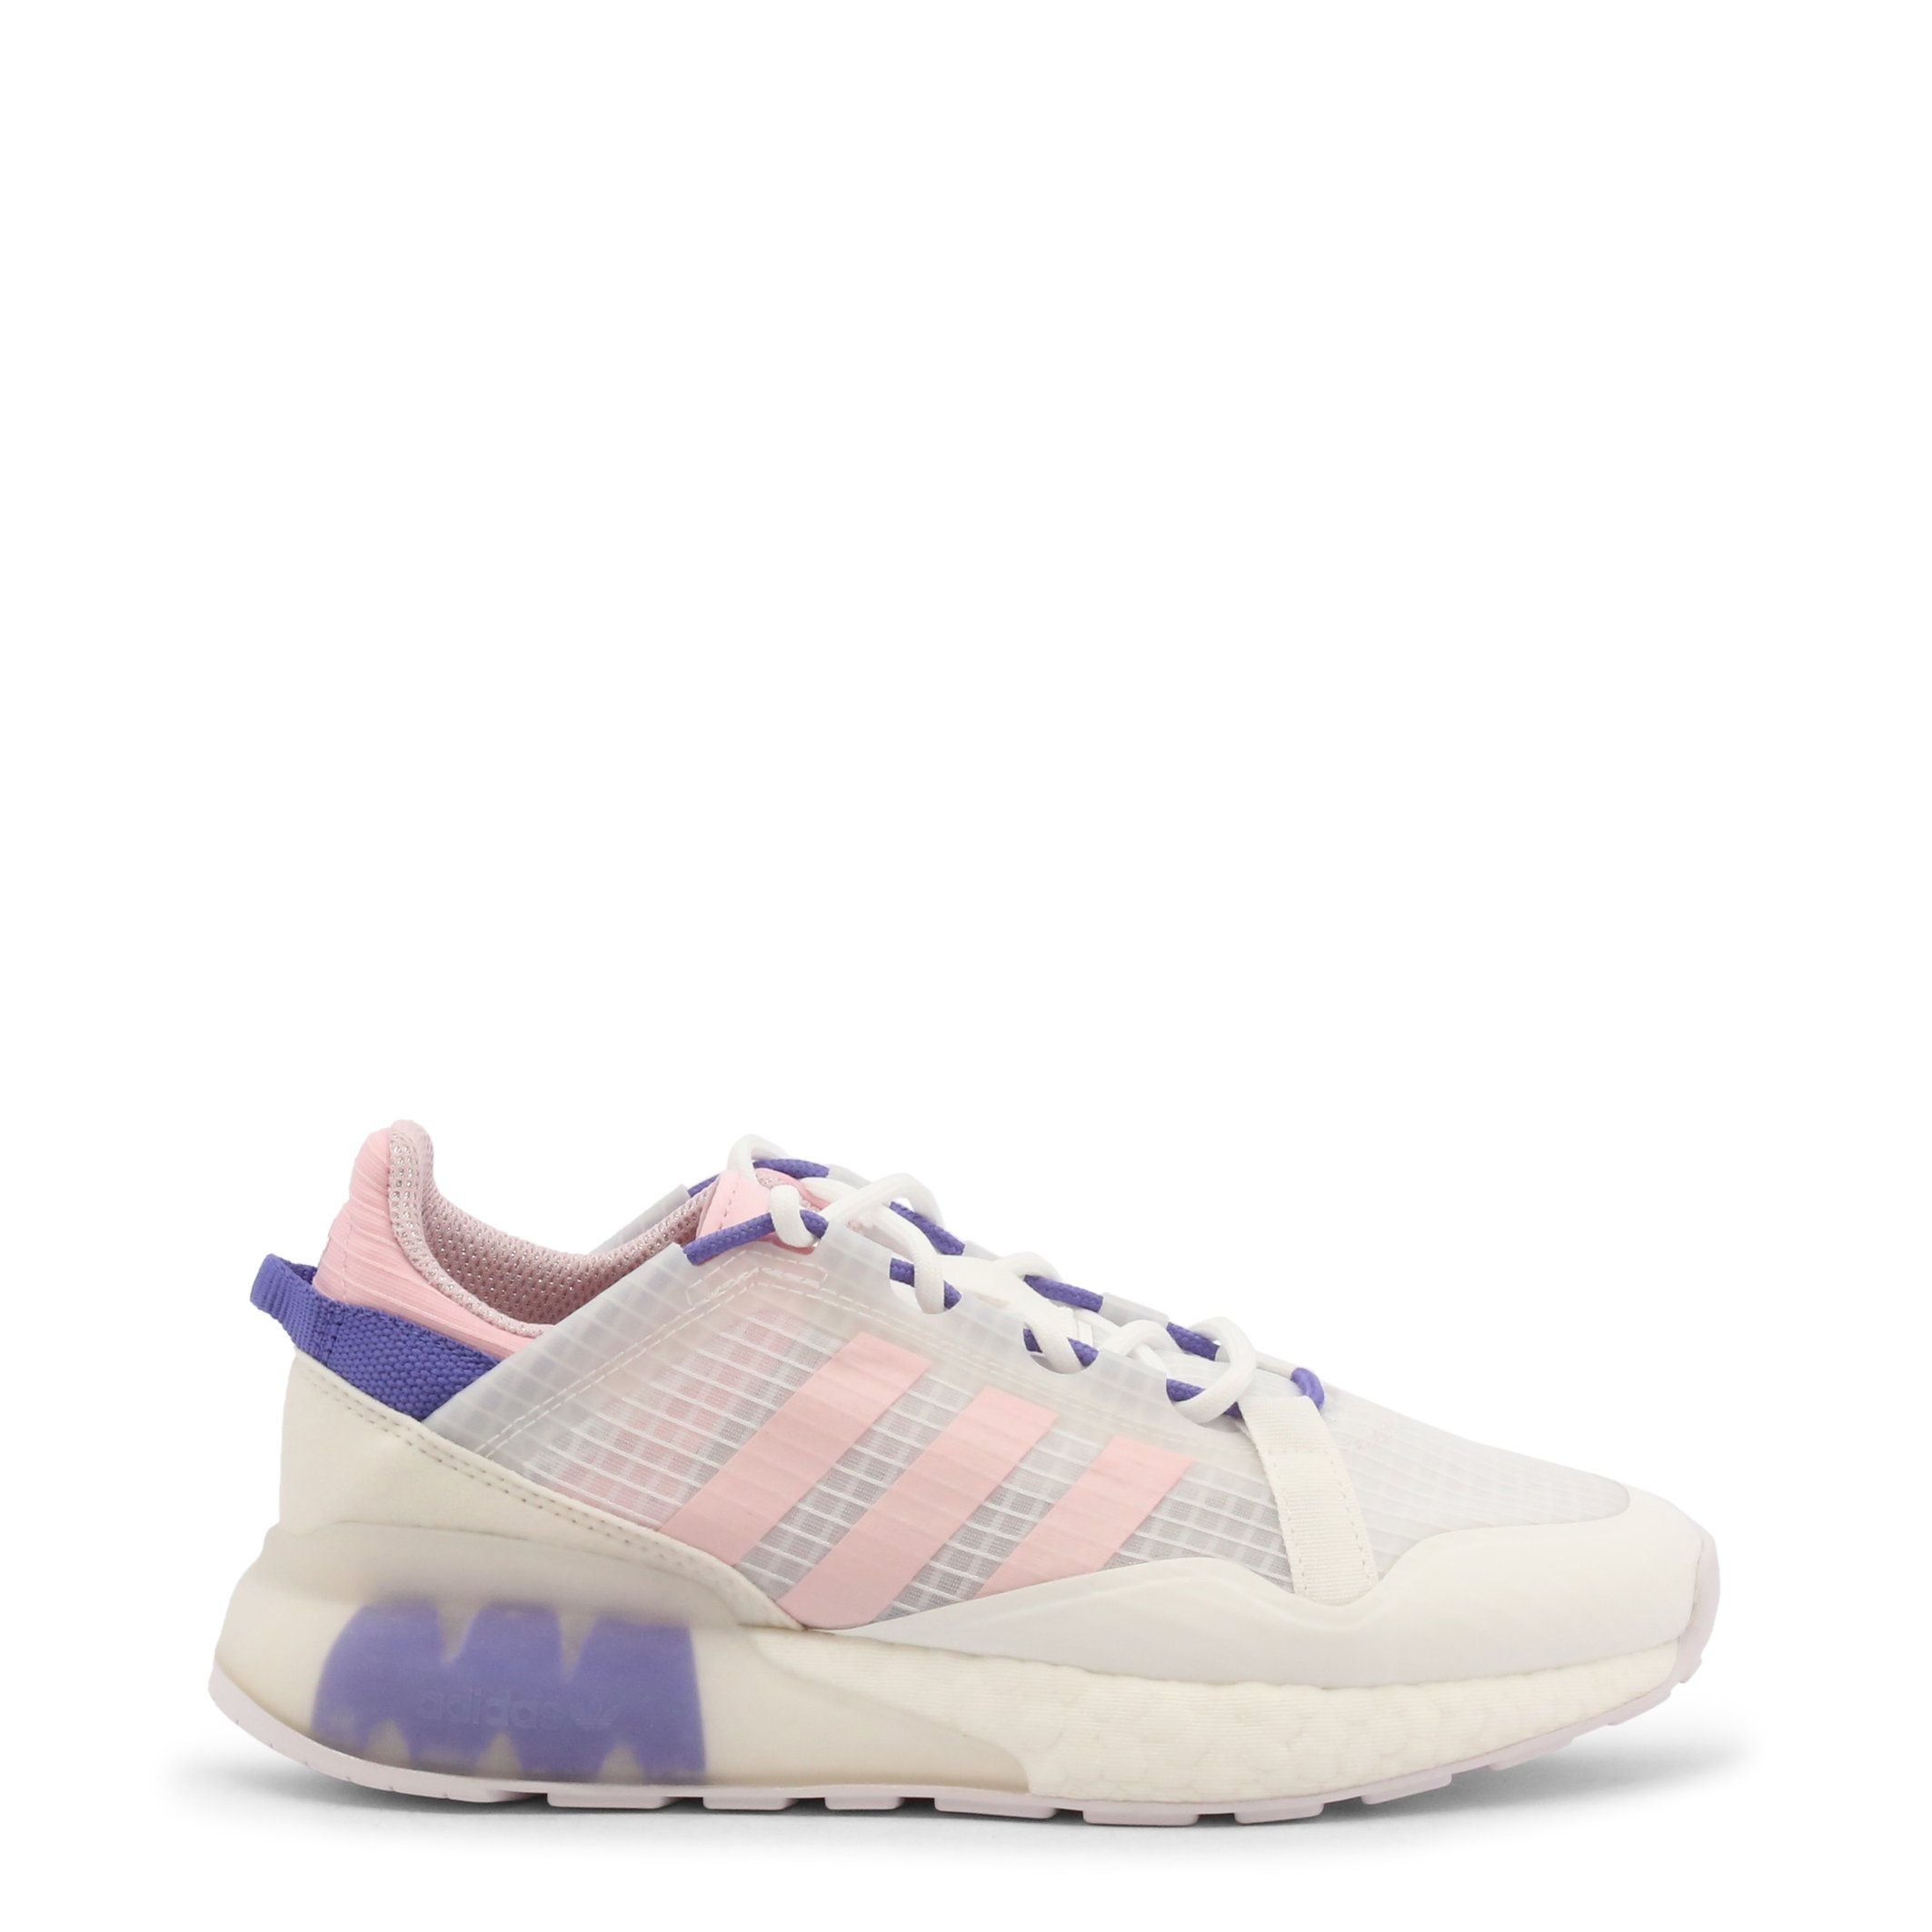 Adidas Women's ZX2K Boost-Pure Sneakers Shoes White 349627 - white-1 UK 4.5